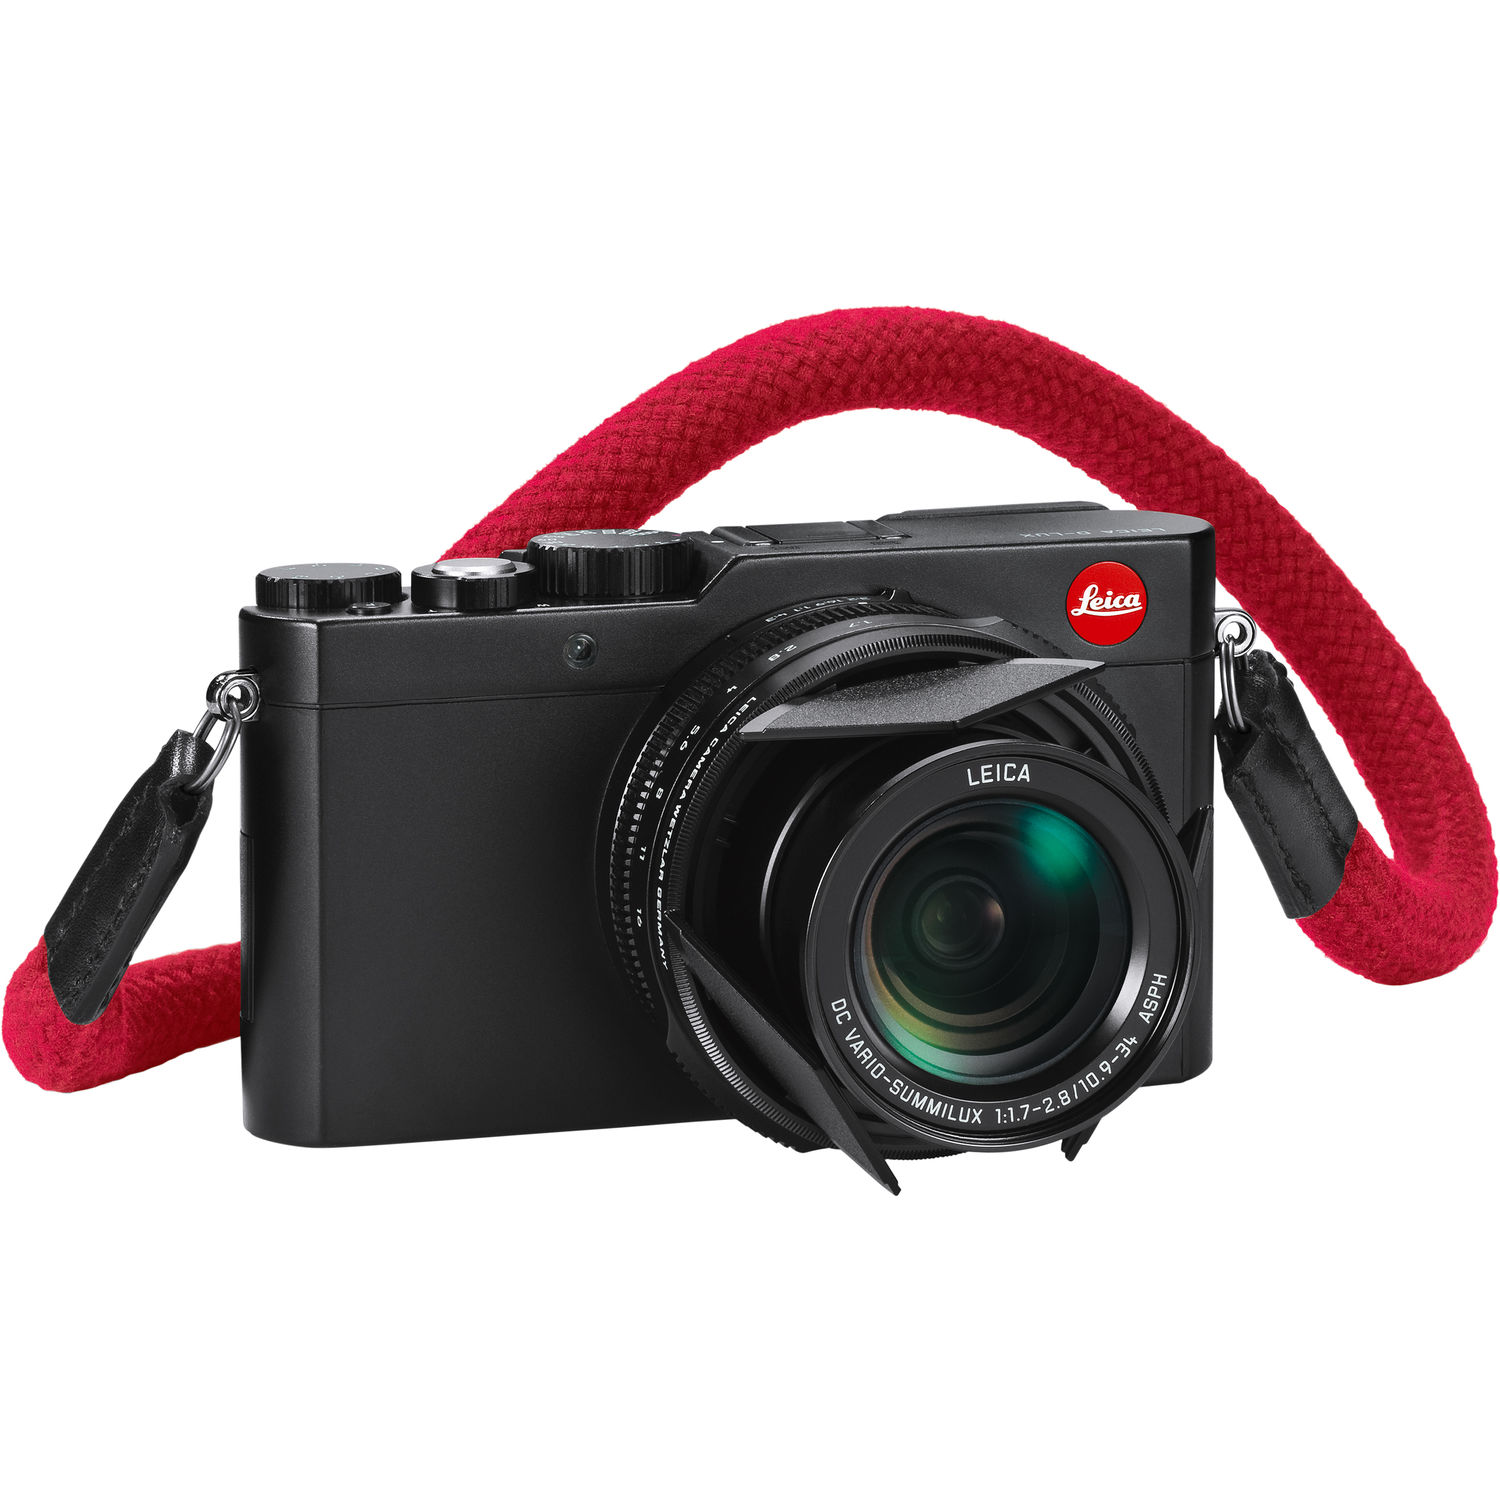 leica d lux typ 109 digital camera review